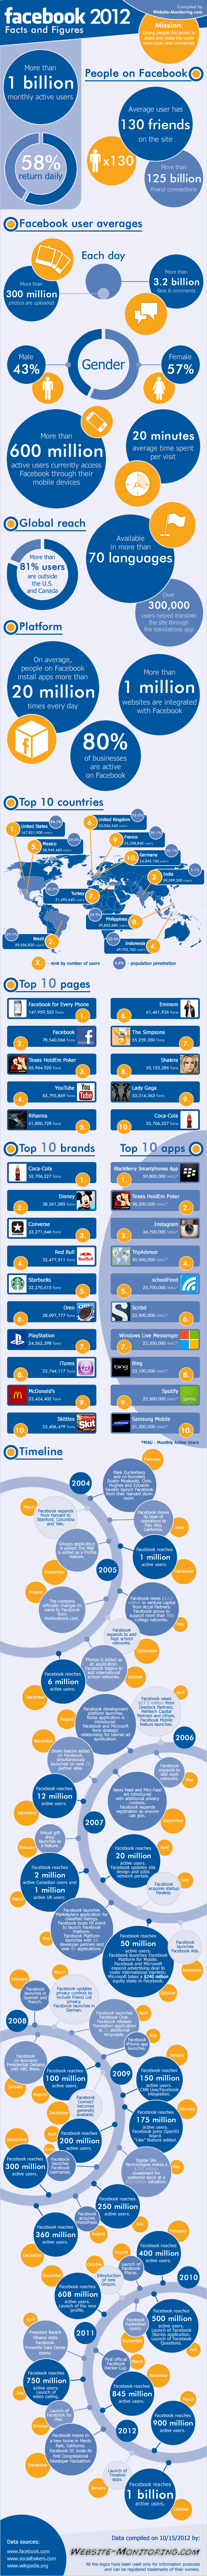 Top 10 Apps, Pages, Brands on Facebook